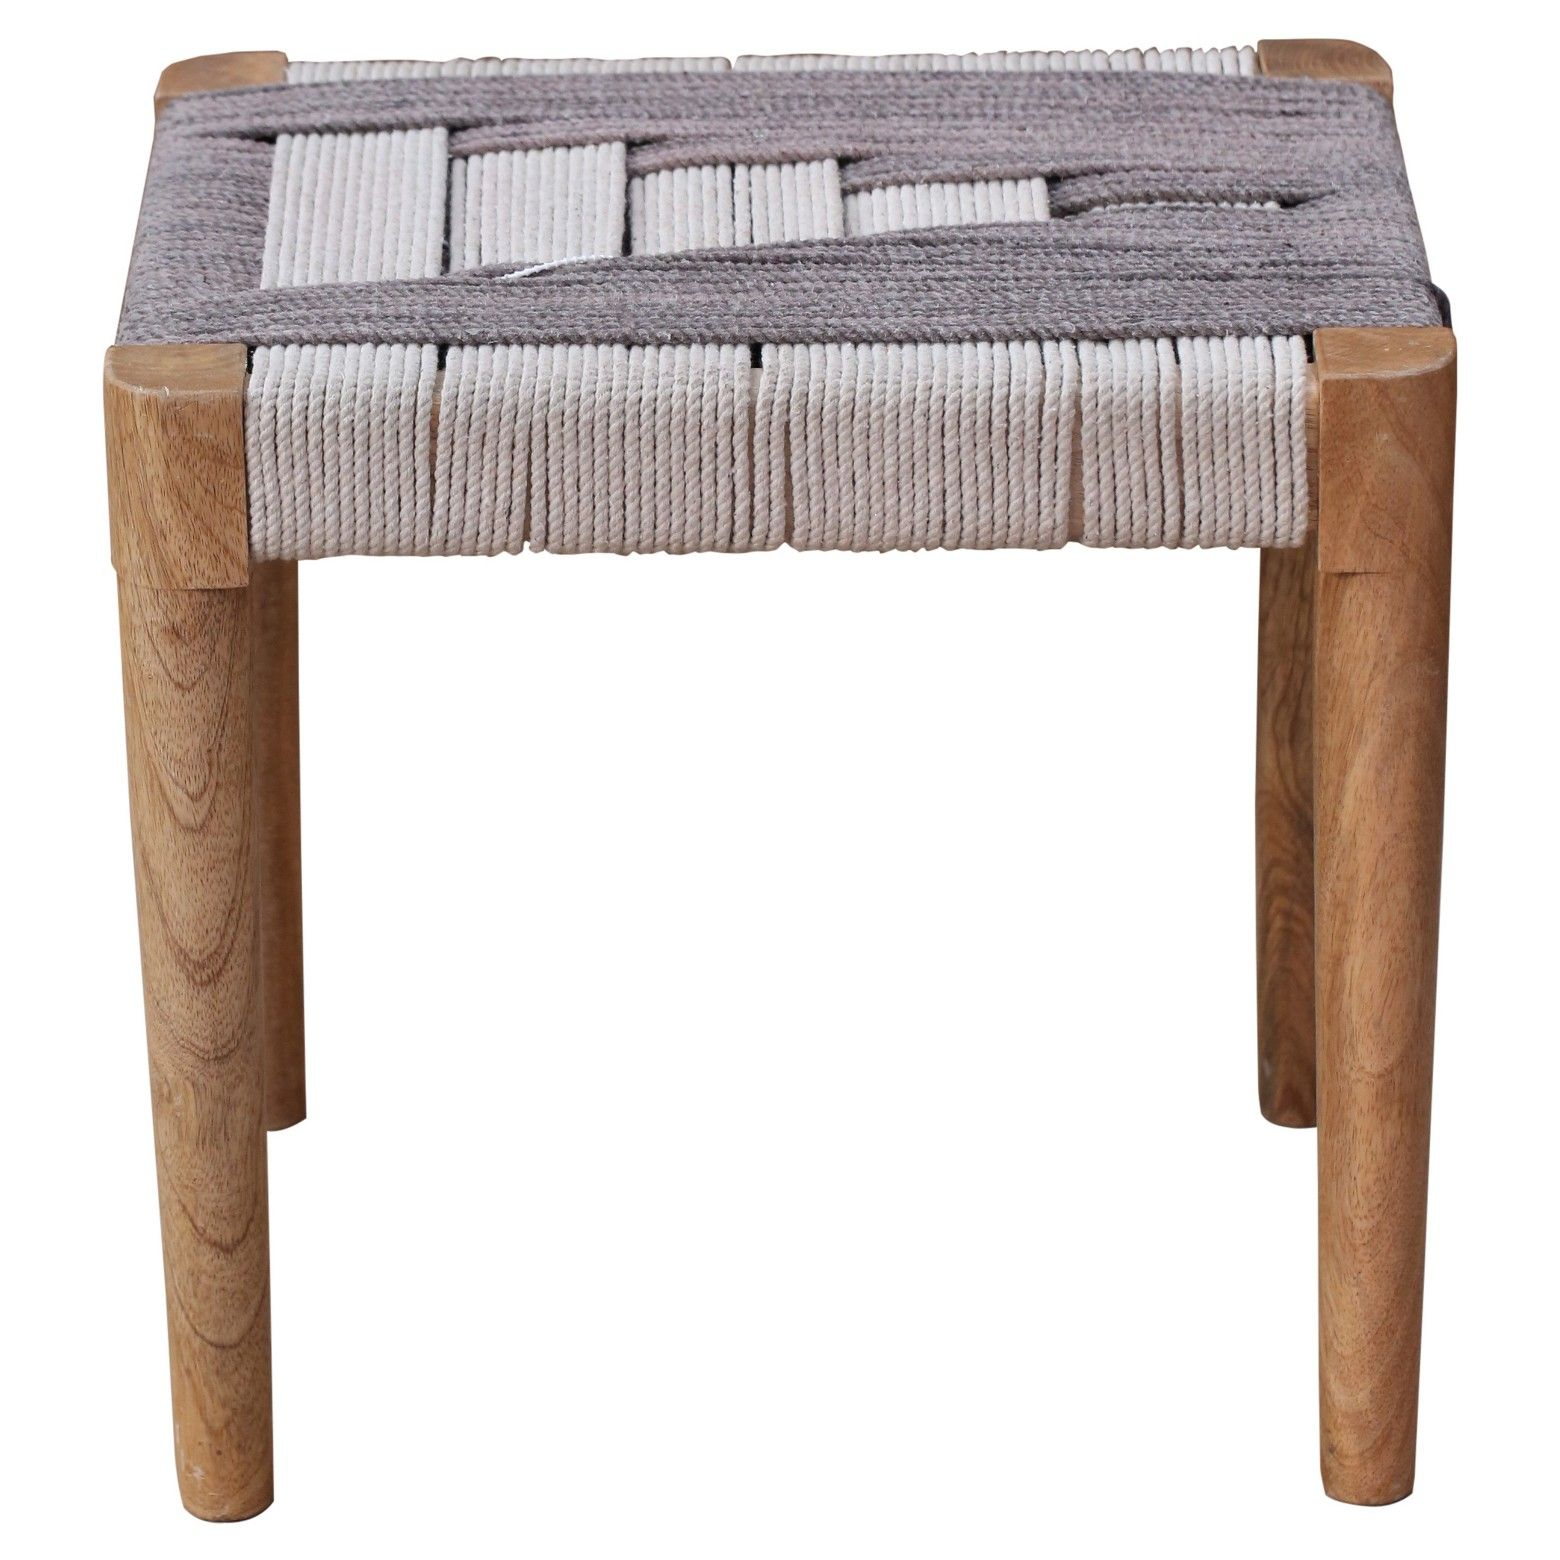 Put your feet up and relax with the Woven Accent Stool